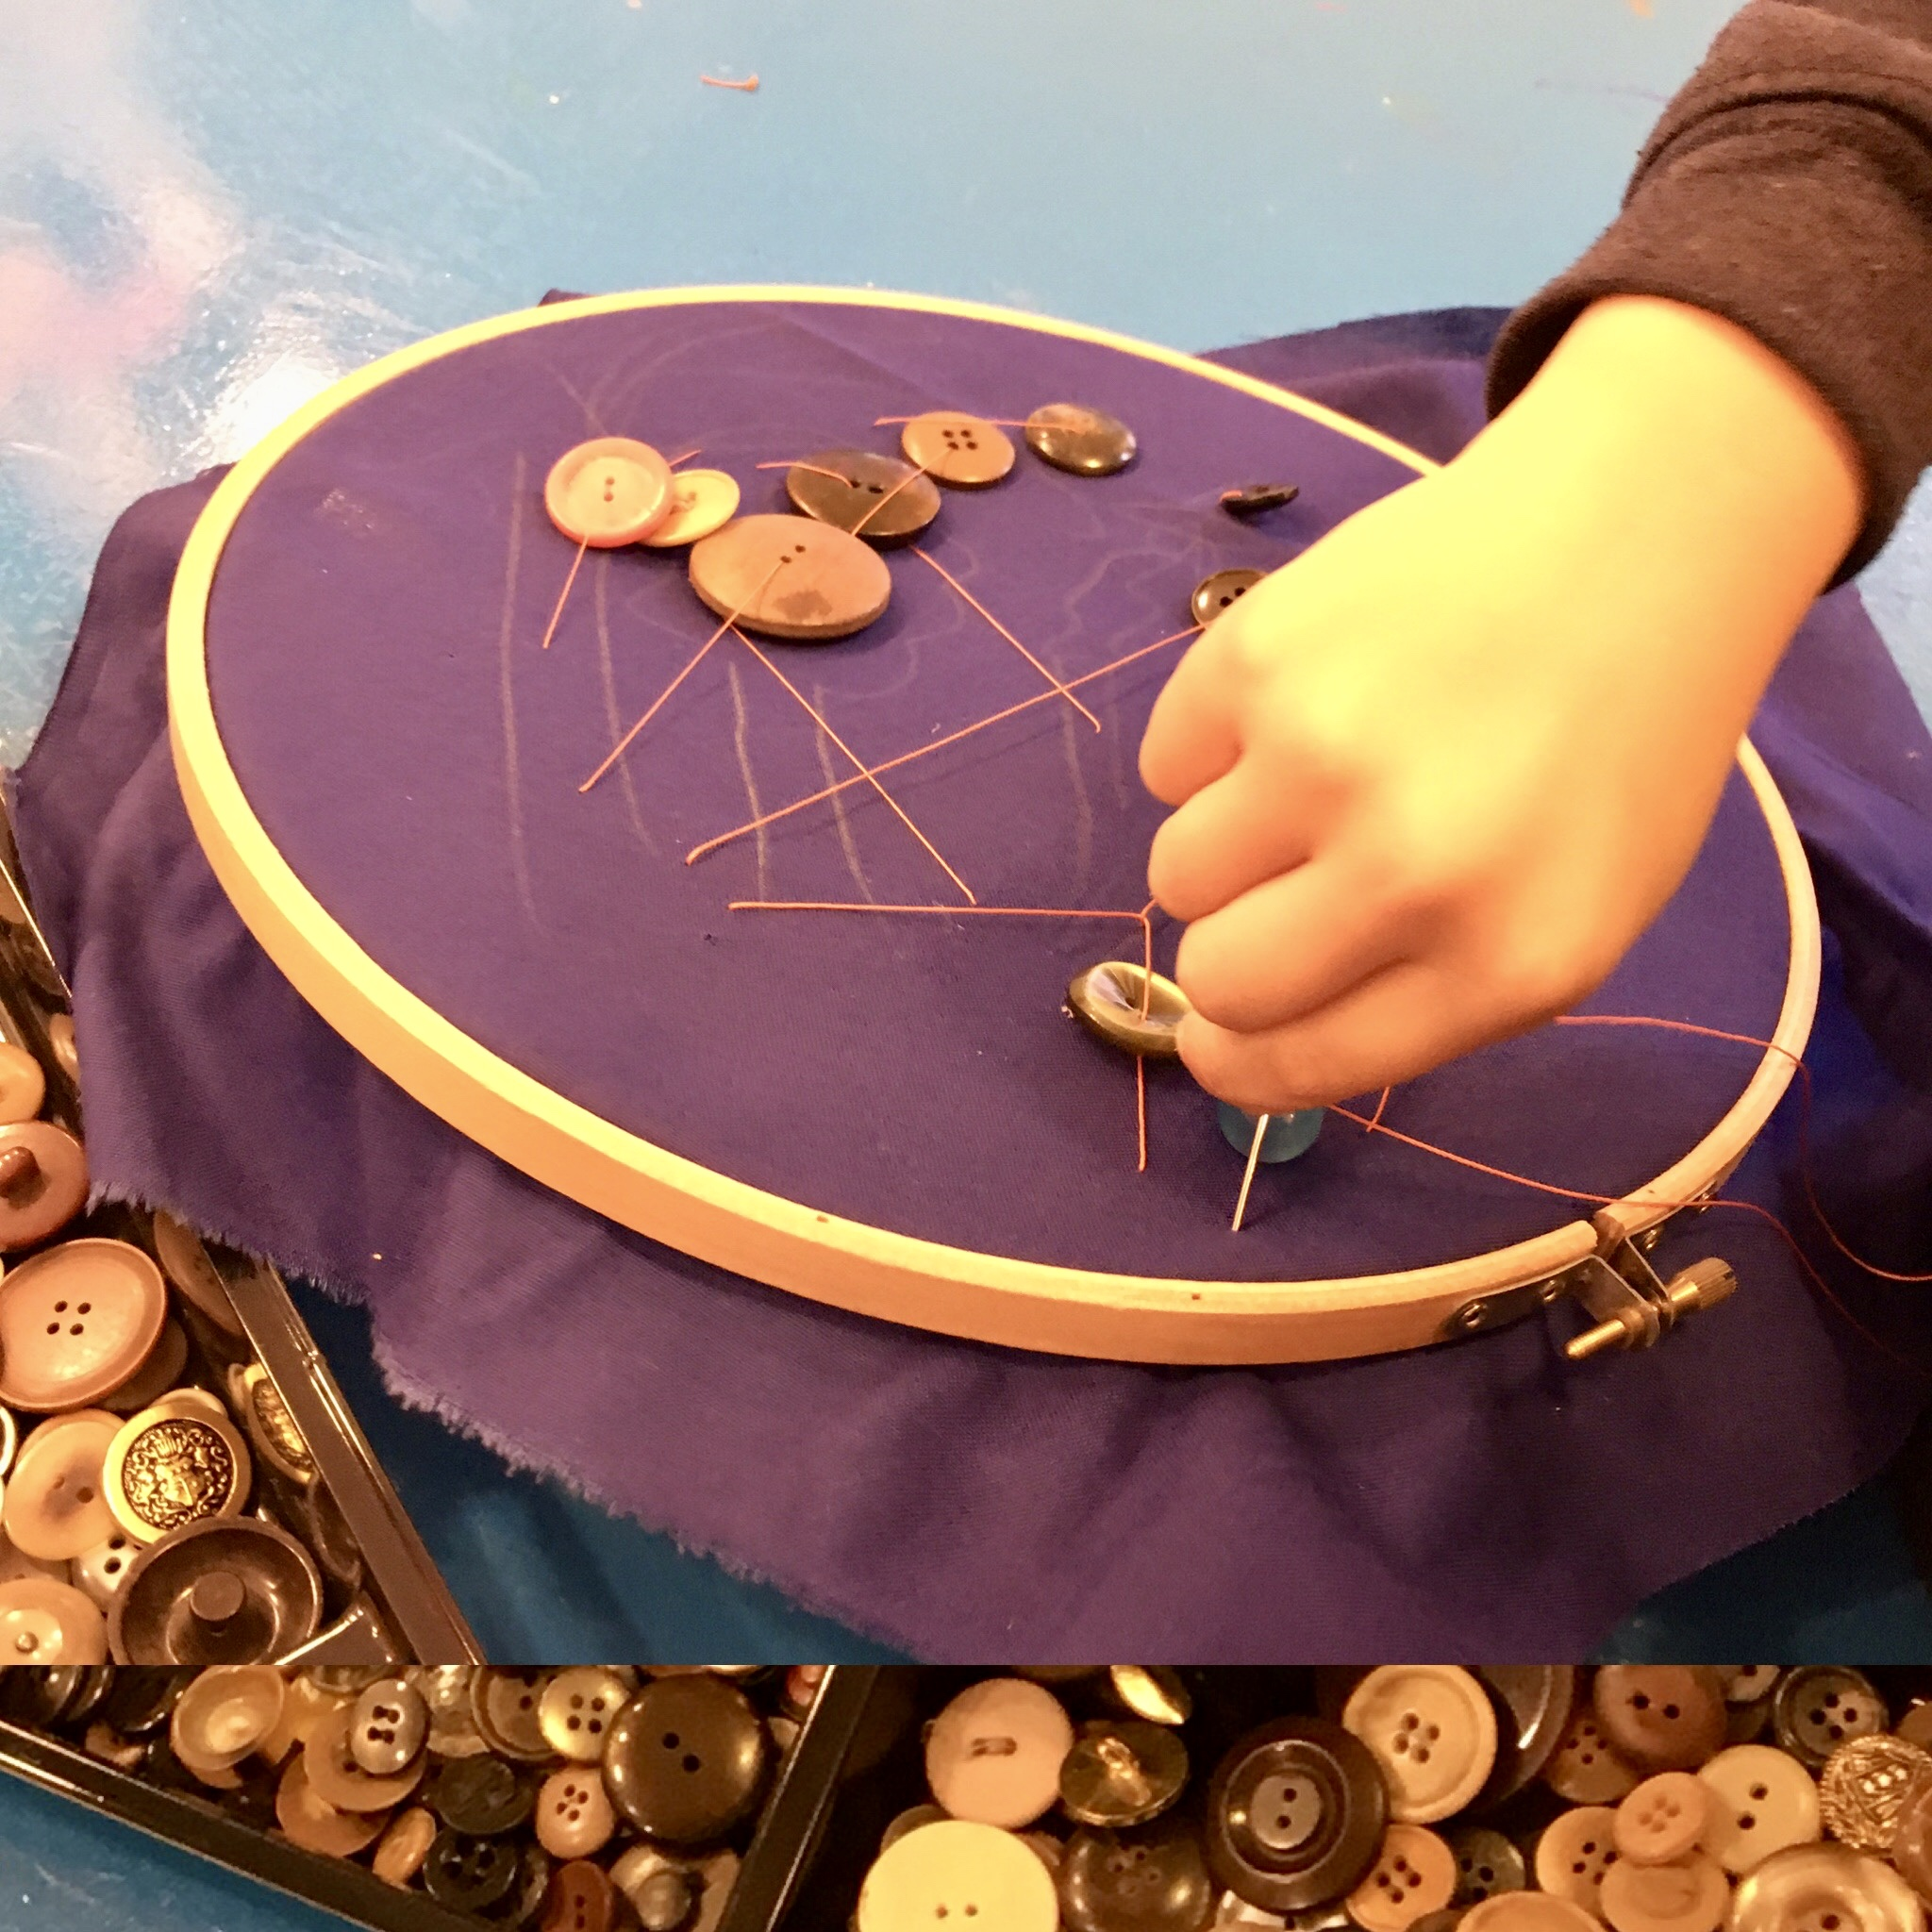 Play & Explore - Sewing - Using embroidery hoops and orange thread we chose buttons and beads to add to our dark blue cotton drill background. 5 year olds always get such satisfaction from sewing, and from free choice.